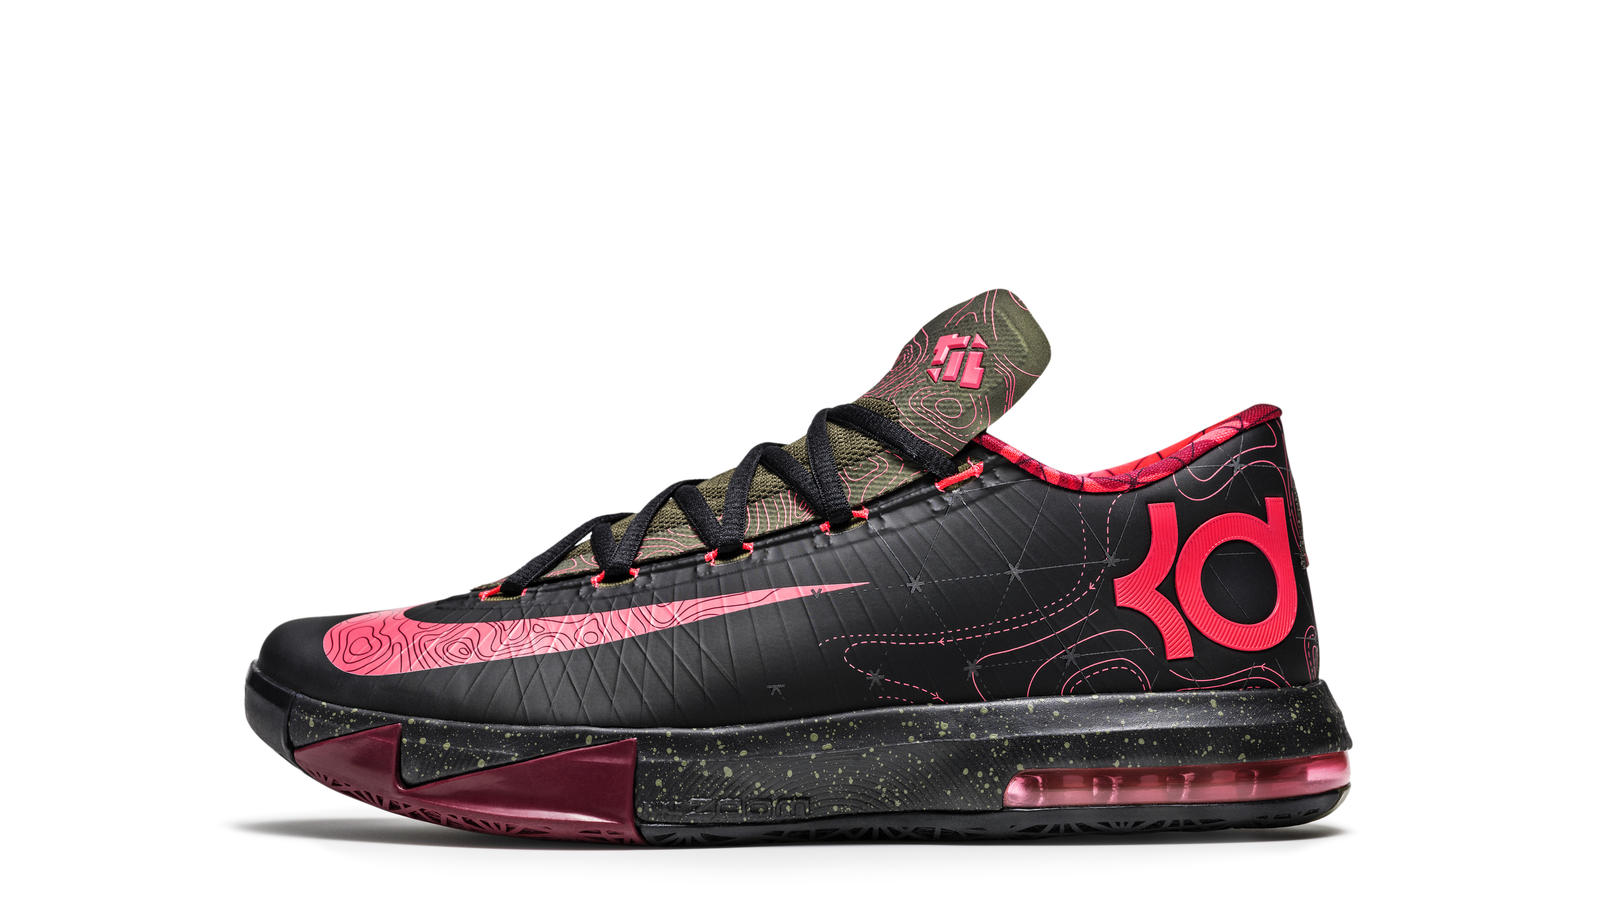 To acquire Shoes Durant 6 pink pictures trends